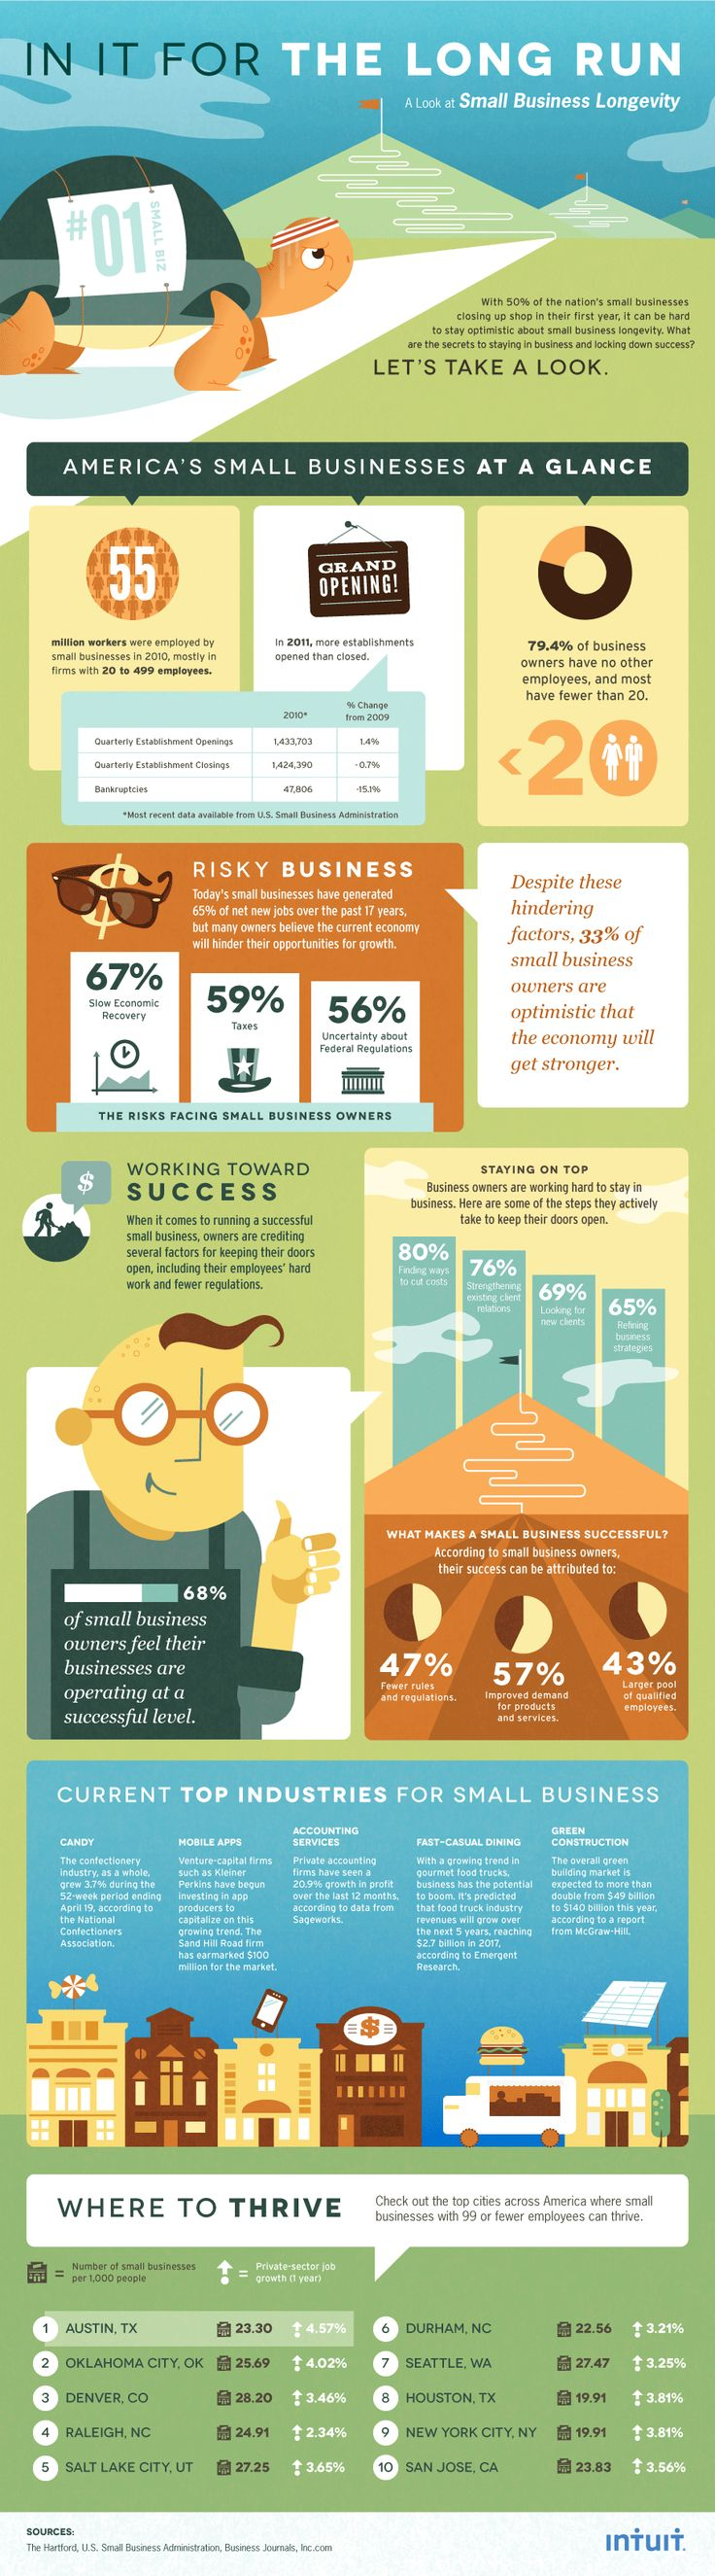 Column Five and Intuit put together this infographic, which depicts some business owners' approaches to staying in business for the long haul.